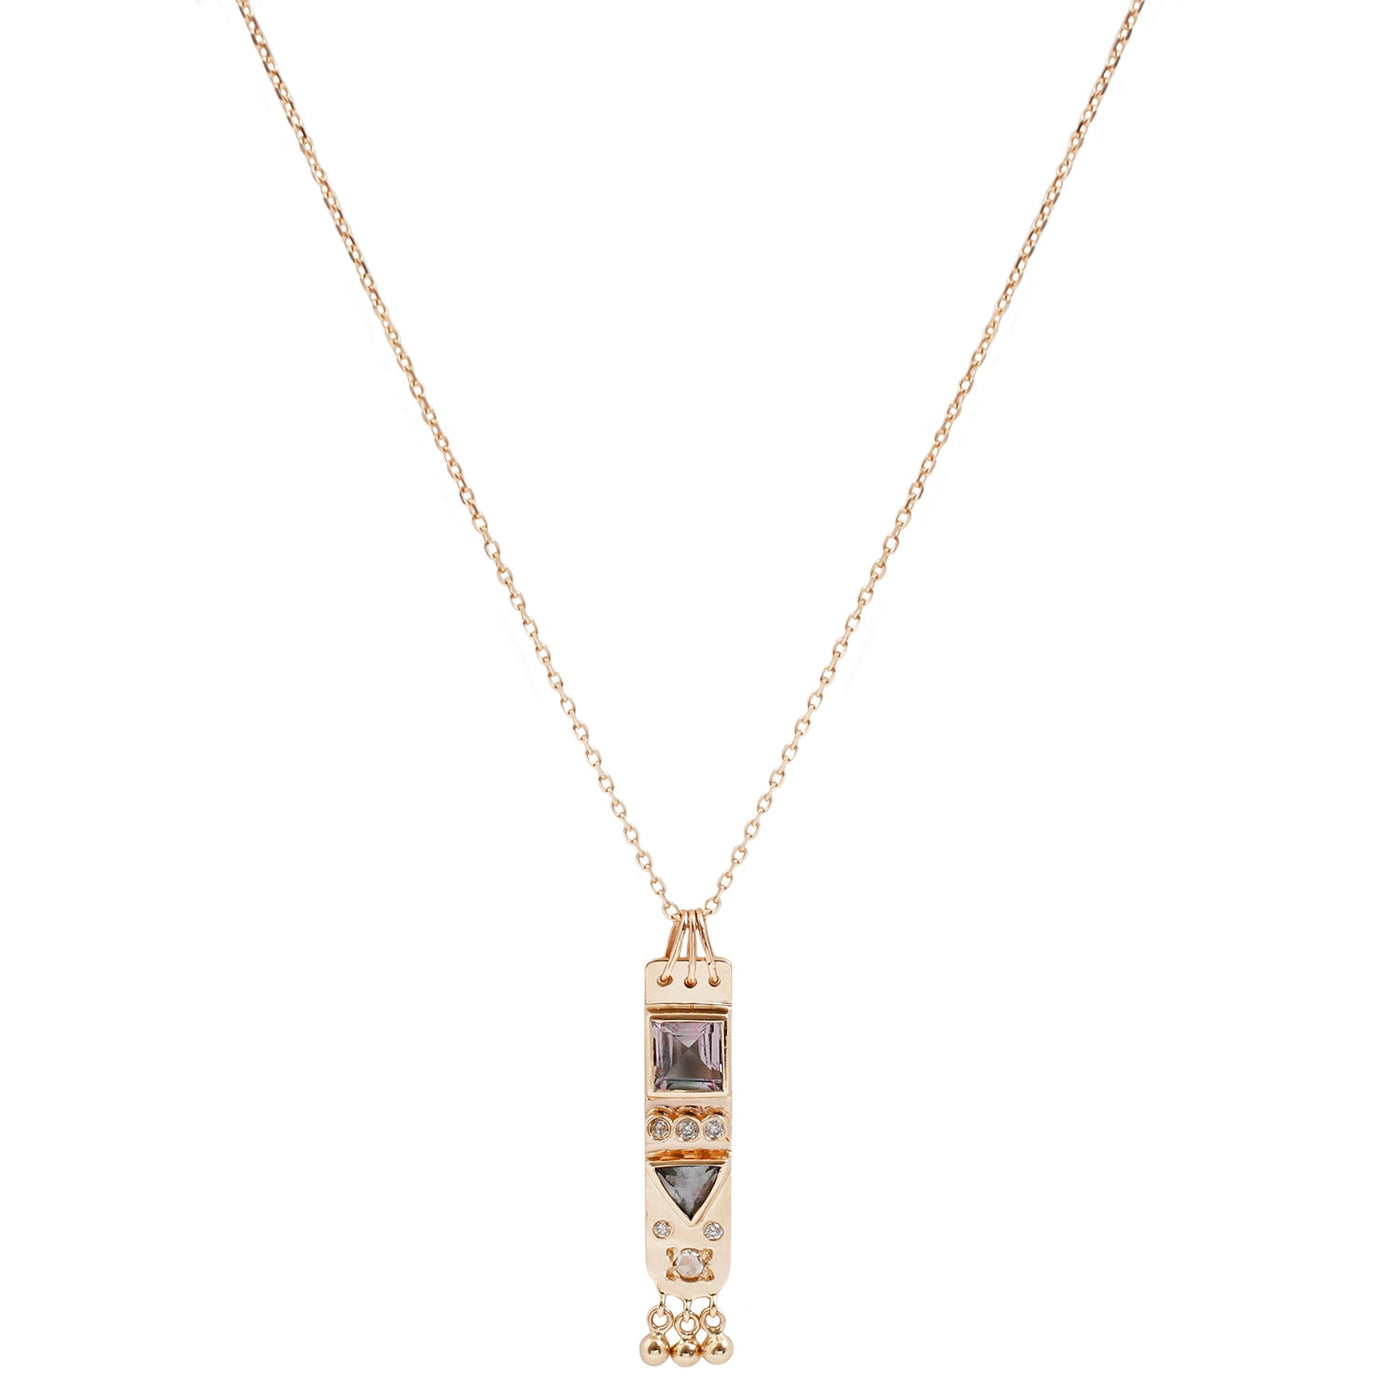 Celine D'Aoust Totem Necklace